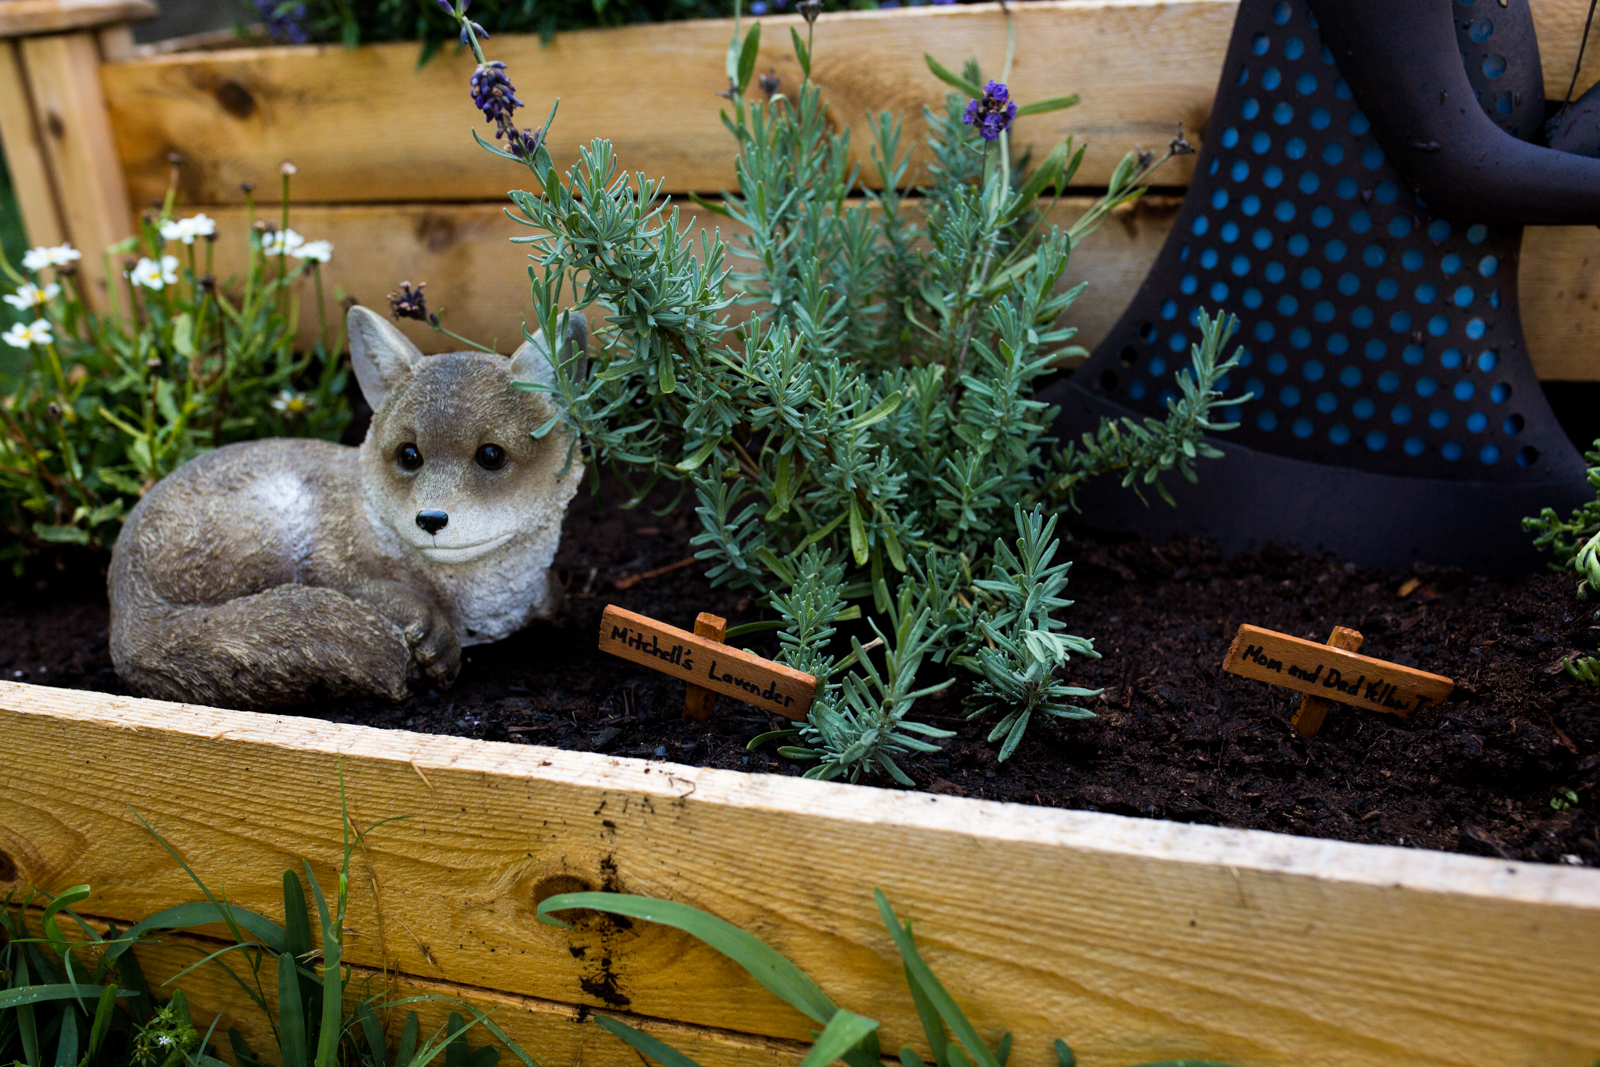 lavender plant in a garden next to a fox